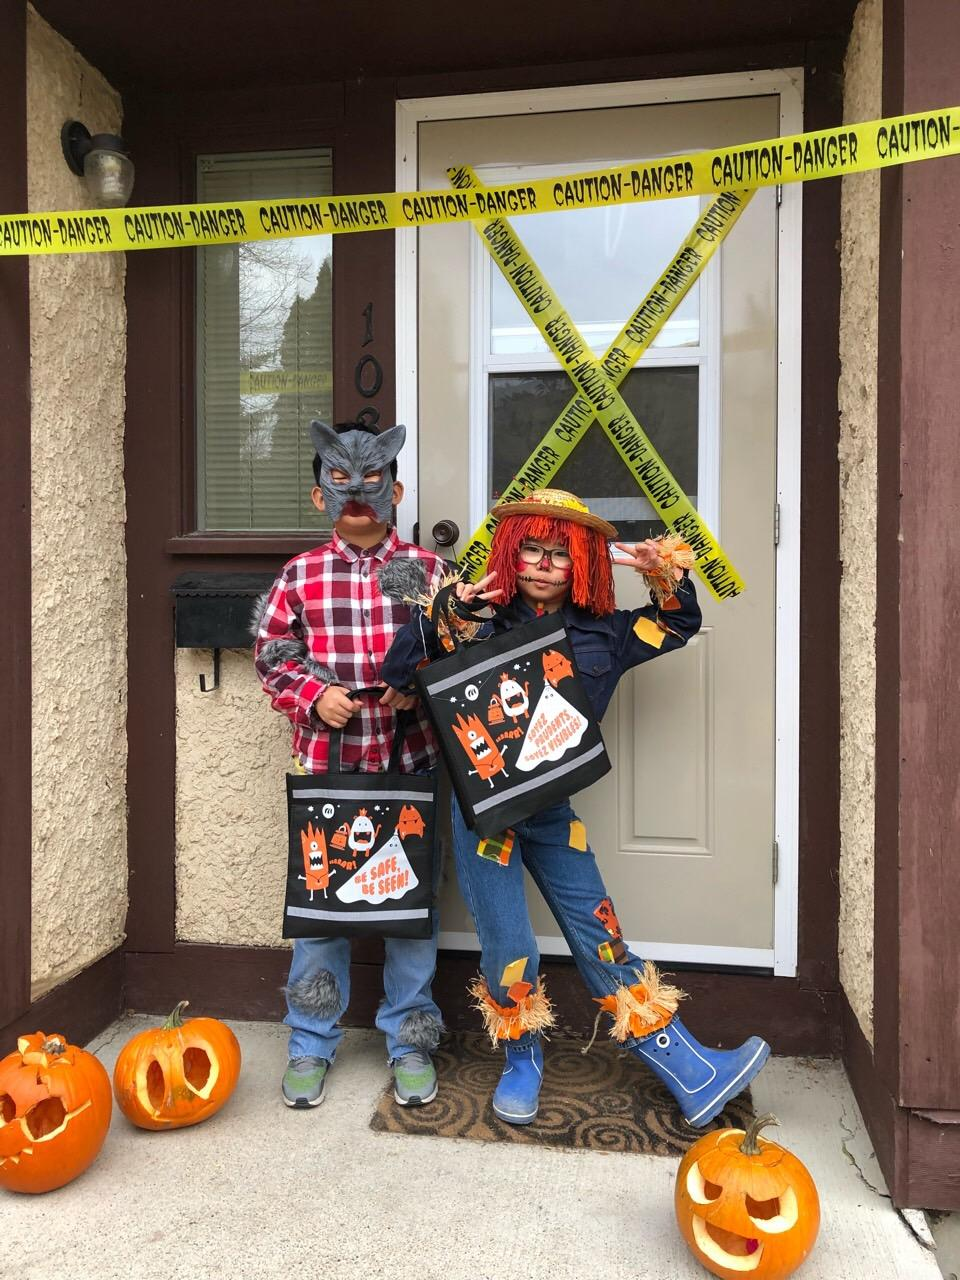 our youngest trick or treaters dresses as wearwolf and scarecrow